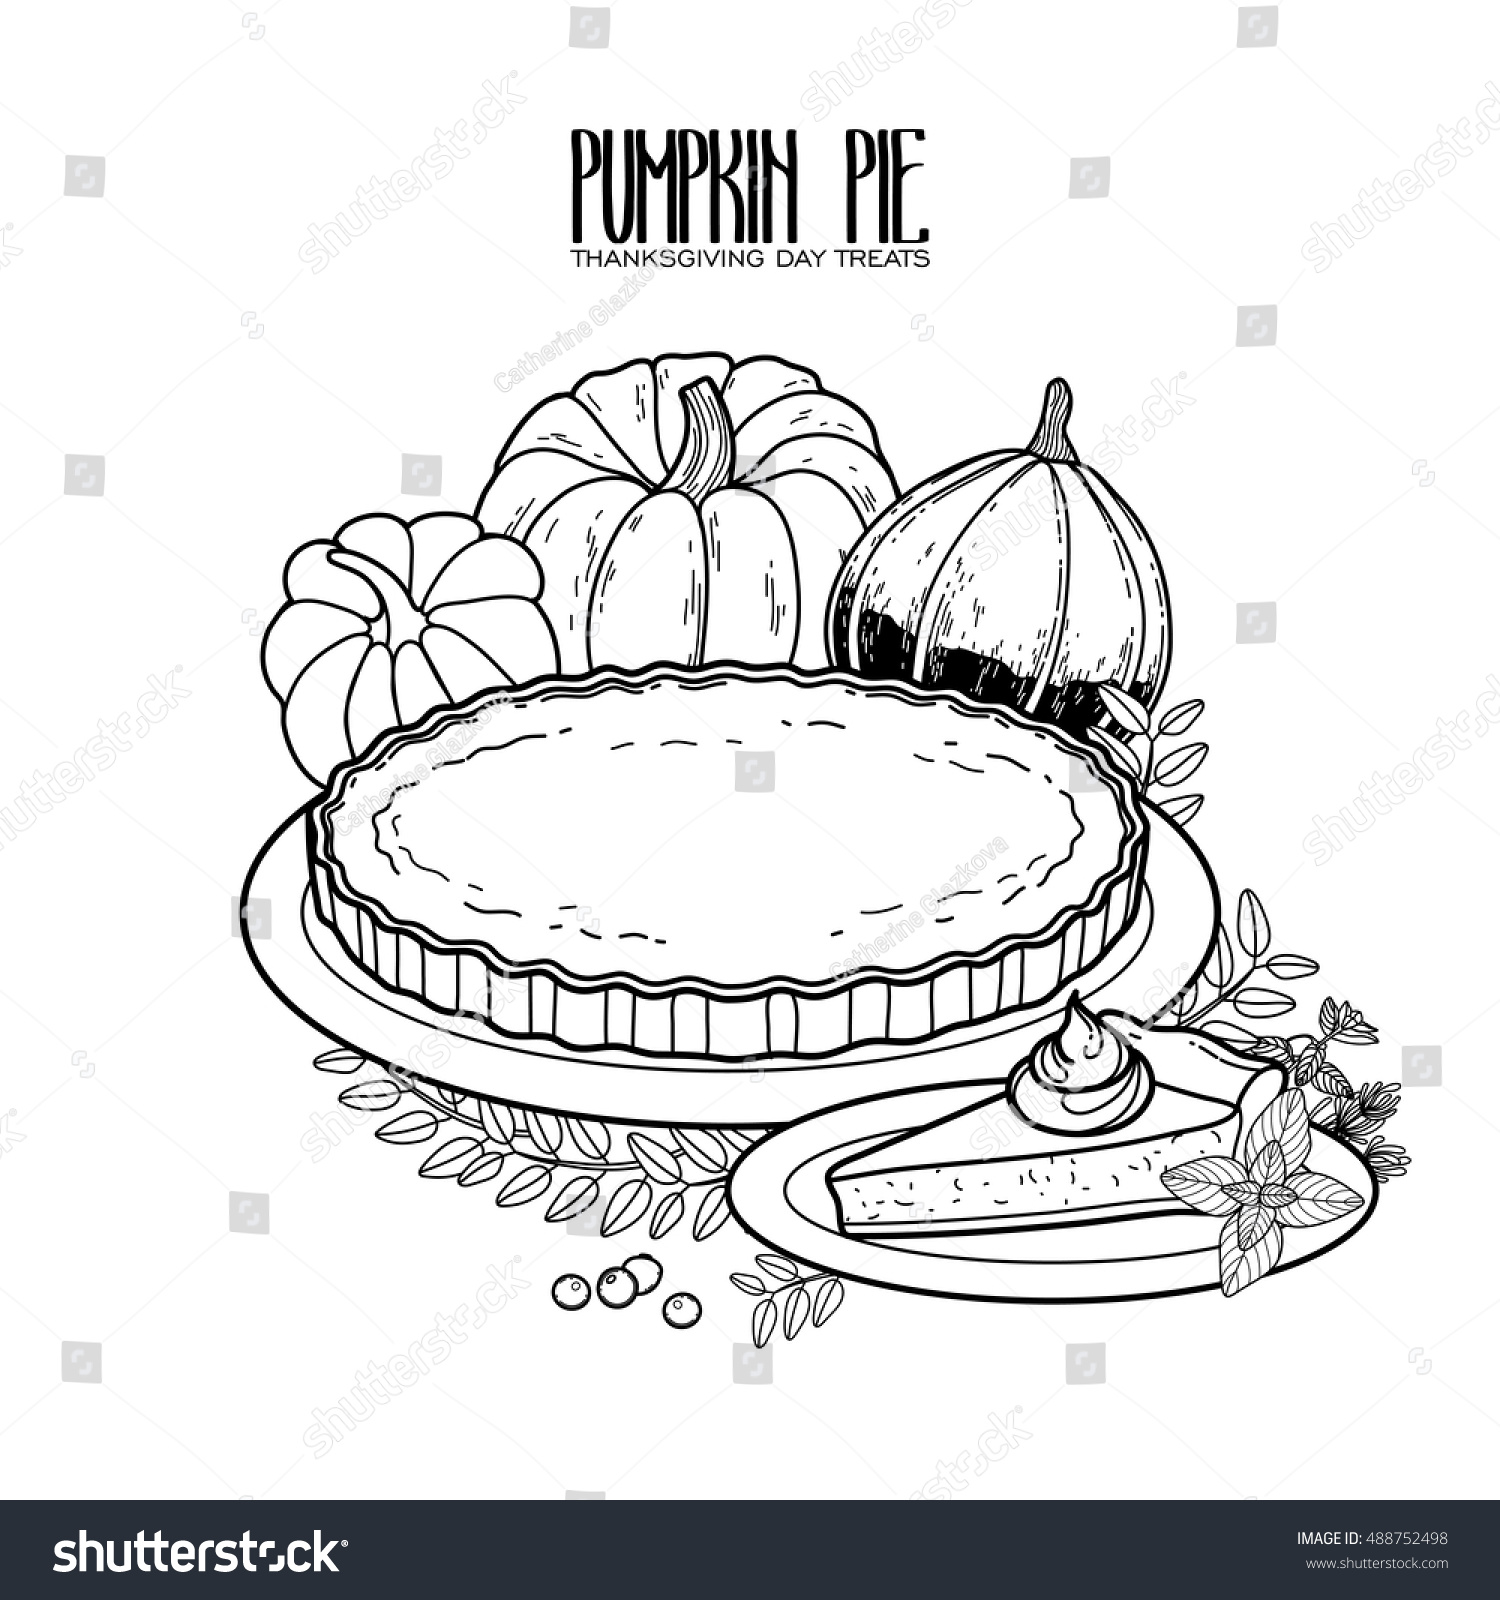 Graphic Pumpkin Pie Drawn In Line Art Style Thanksgiving Day Design Isolated On White Background